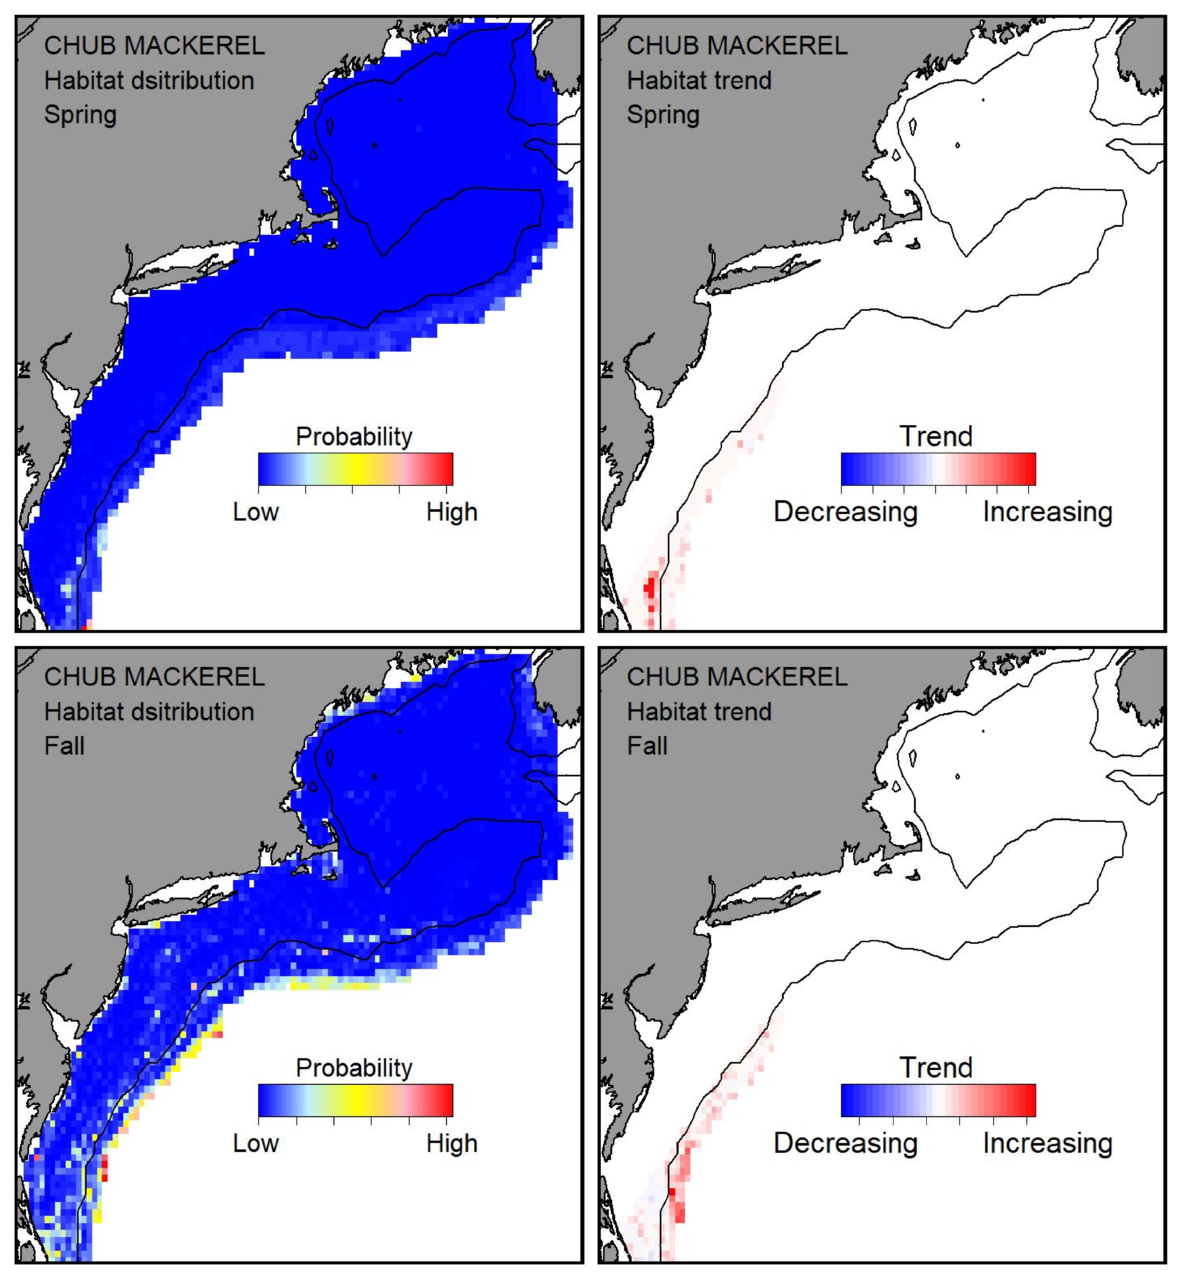 Probable habitat distribution for chub mackerel showing the highest concentration and increasing trend in the Gulf of Maine during the spring. Bottom row: Probable habitat distribution for chub mackerel showing the highest concentration and increasing trend in the Gulf of Maine during the fall.